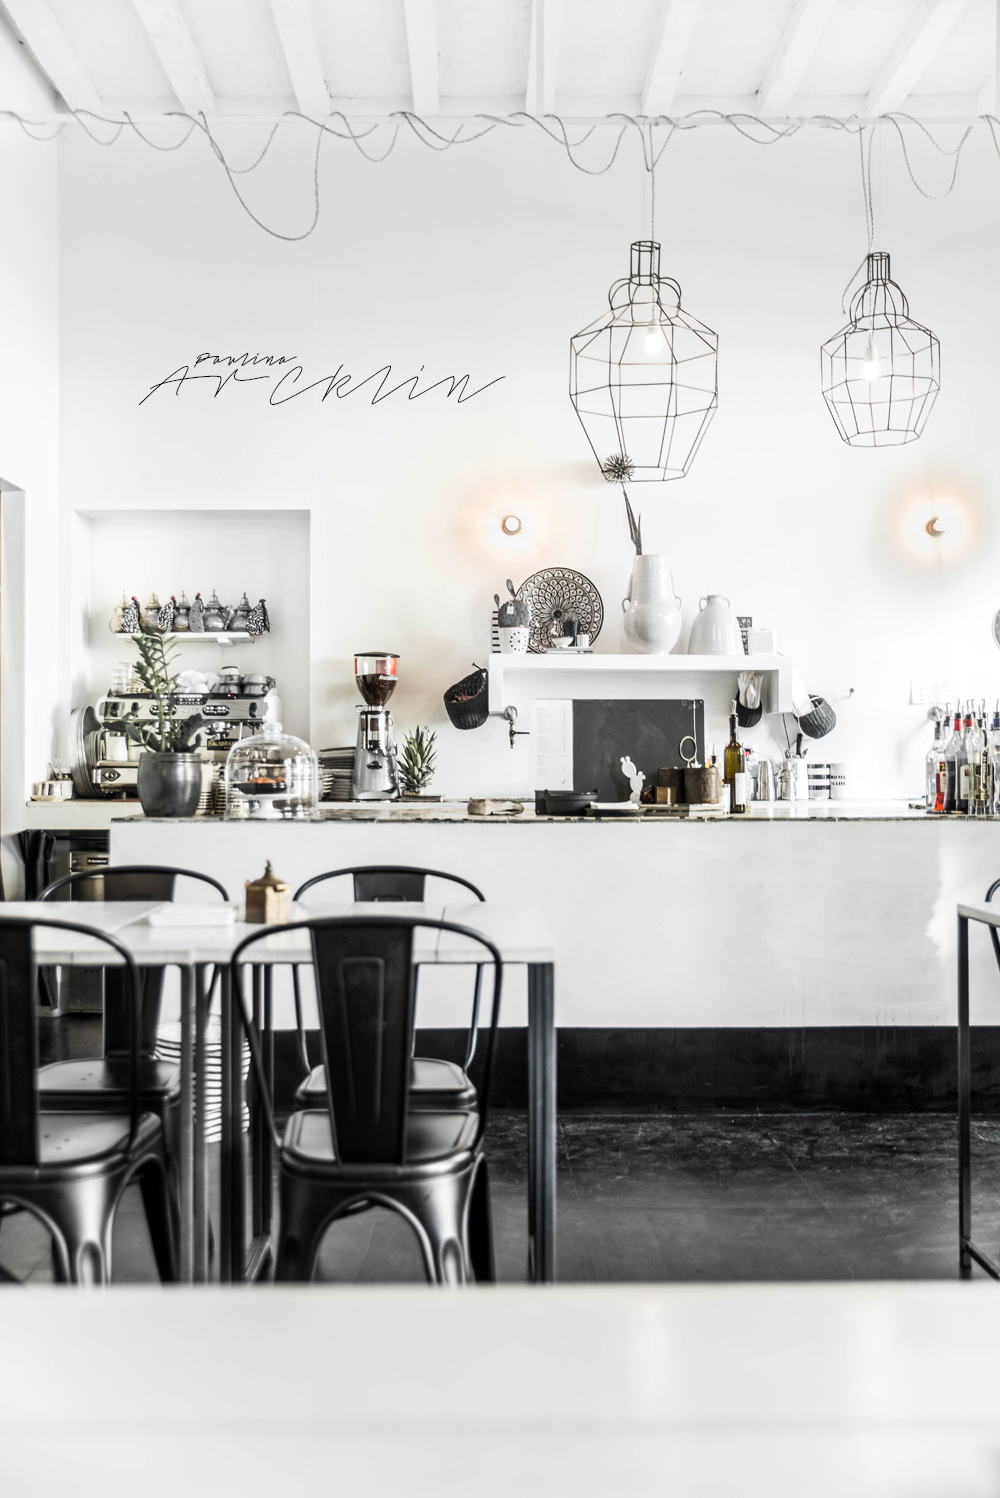 design restaurant in milan, italian interiors, italian interior design, italian design restaurant, paulina arcklin, riad food garden , black white restaurant design, ethnic chic, ethnic scandinavian, scandi boho, scandinavian style restaurant, tine k home, black white decor, black white counter